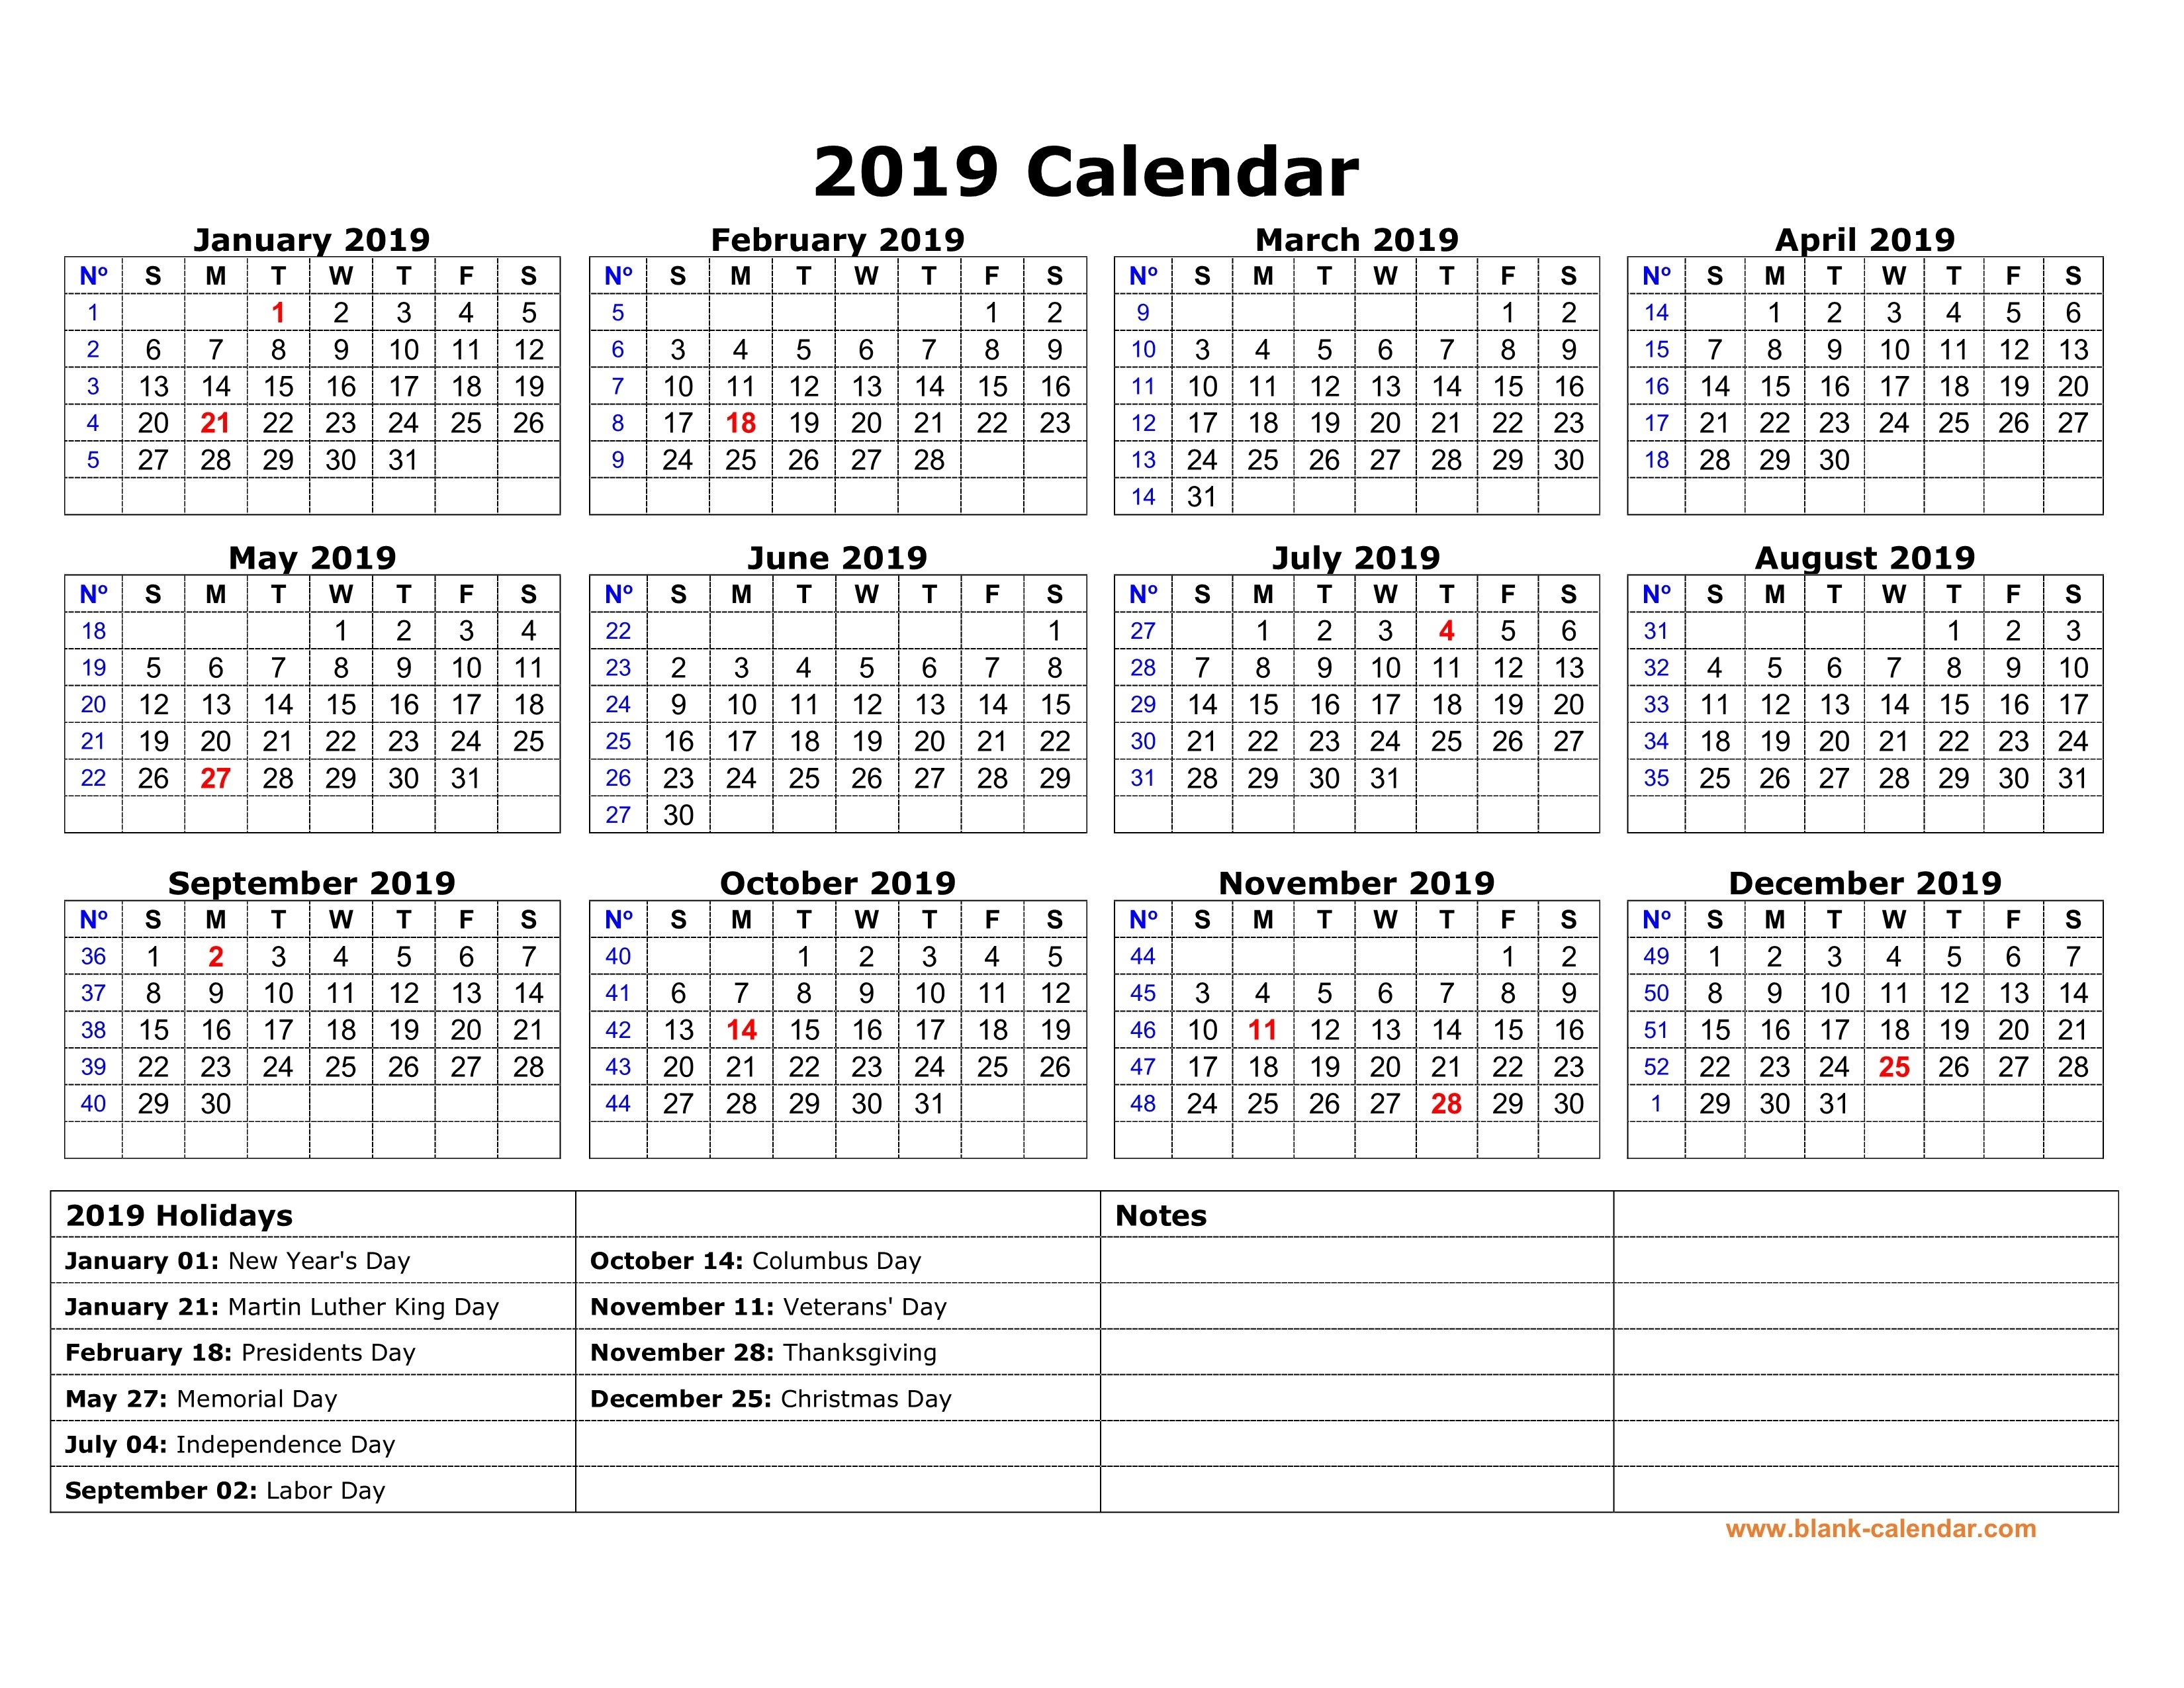 Free Download Printable Calendar 2019 With Us Federal Holidays, One Calendar 2019 Including Holidays